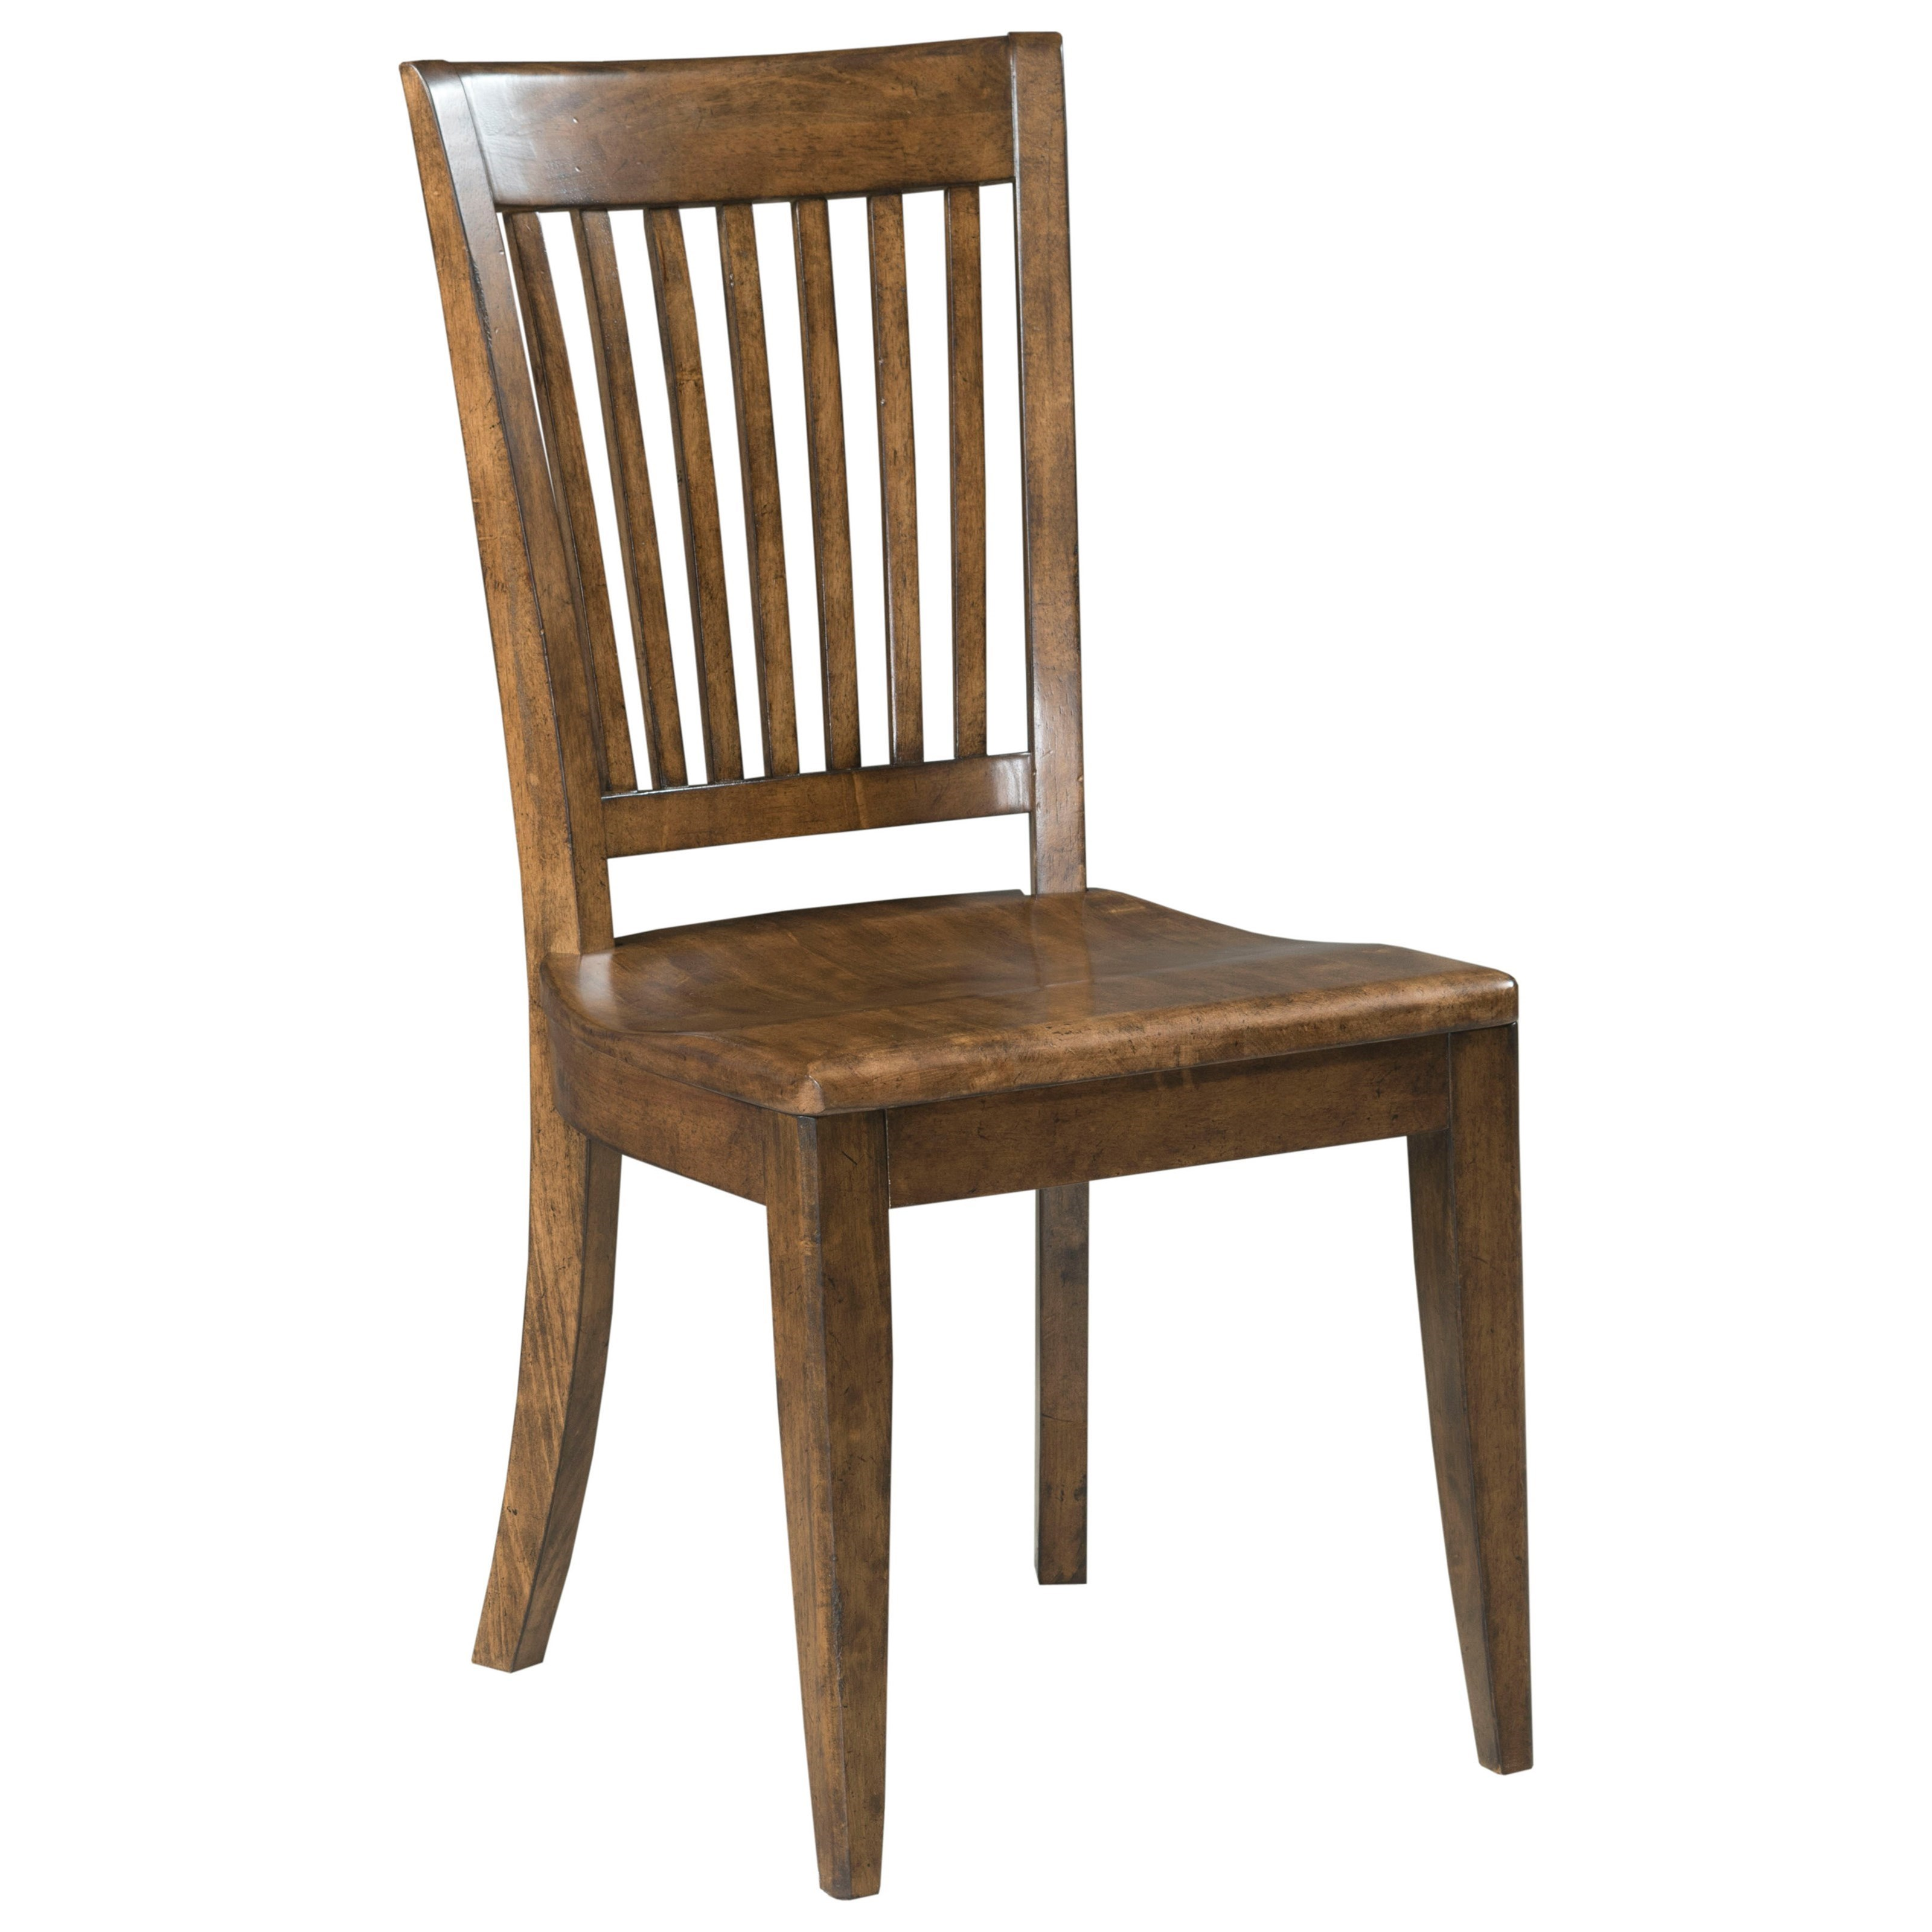 Nook Chair Kincaid Furniture The Nook 664 622 Solid Wood Slat Back